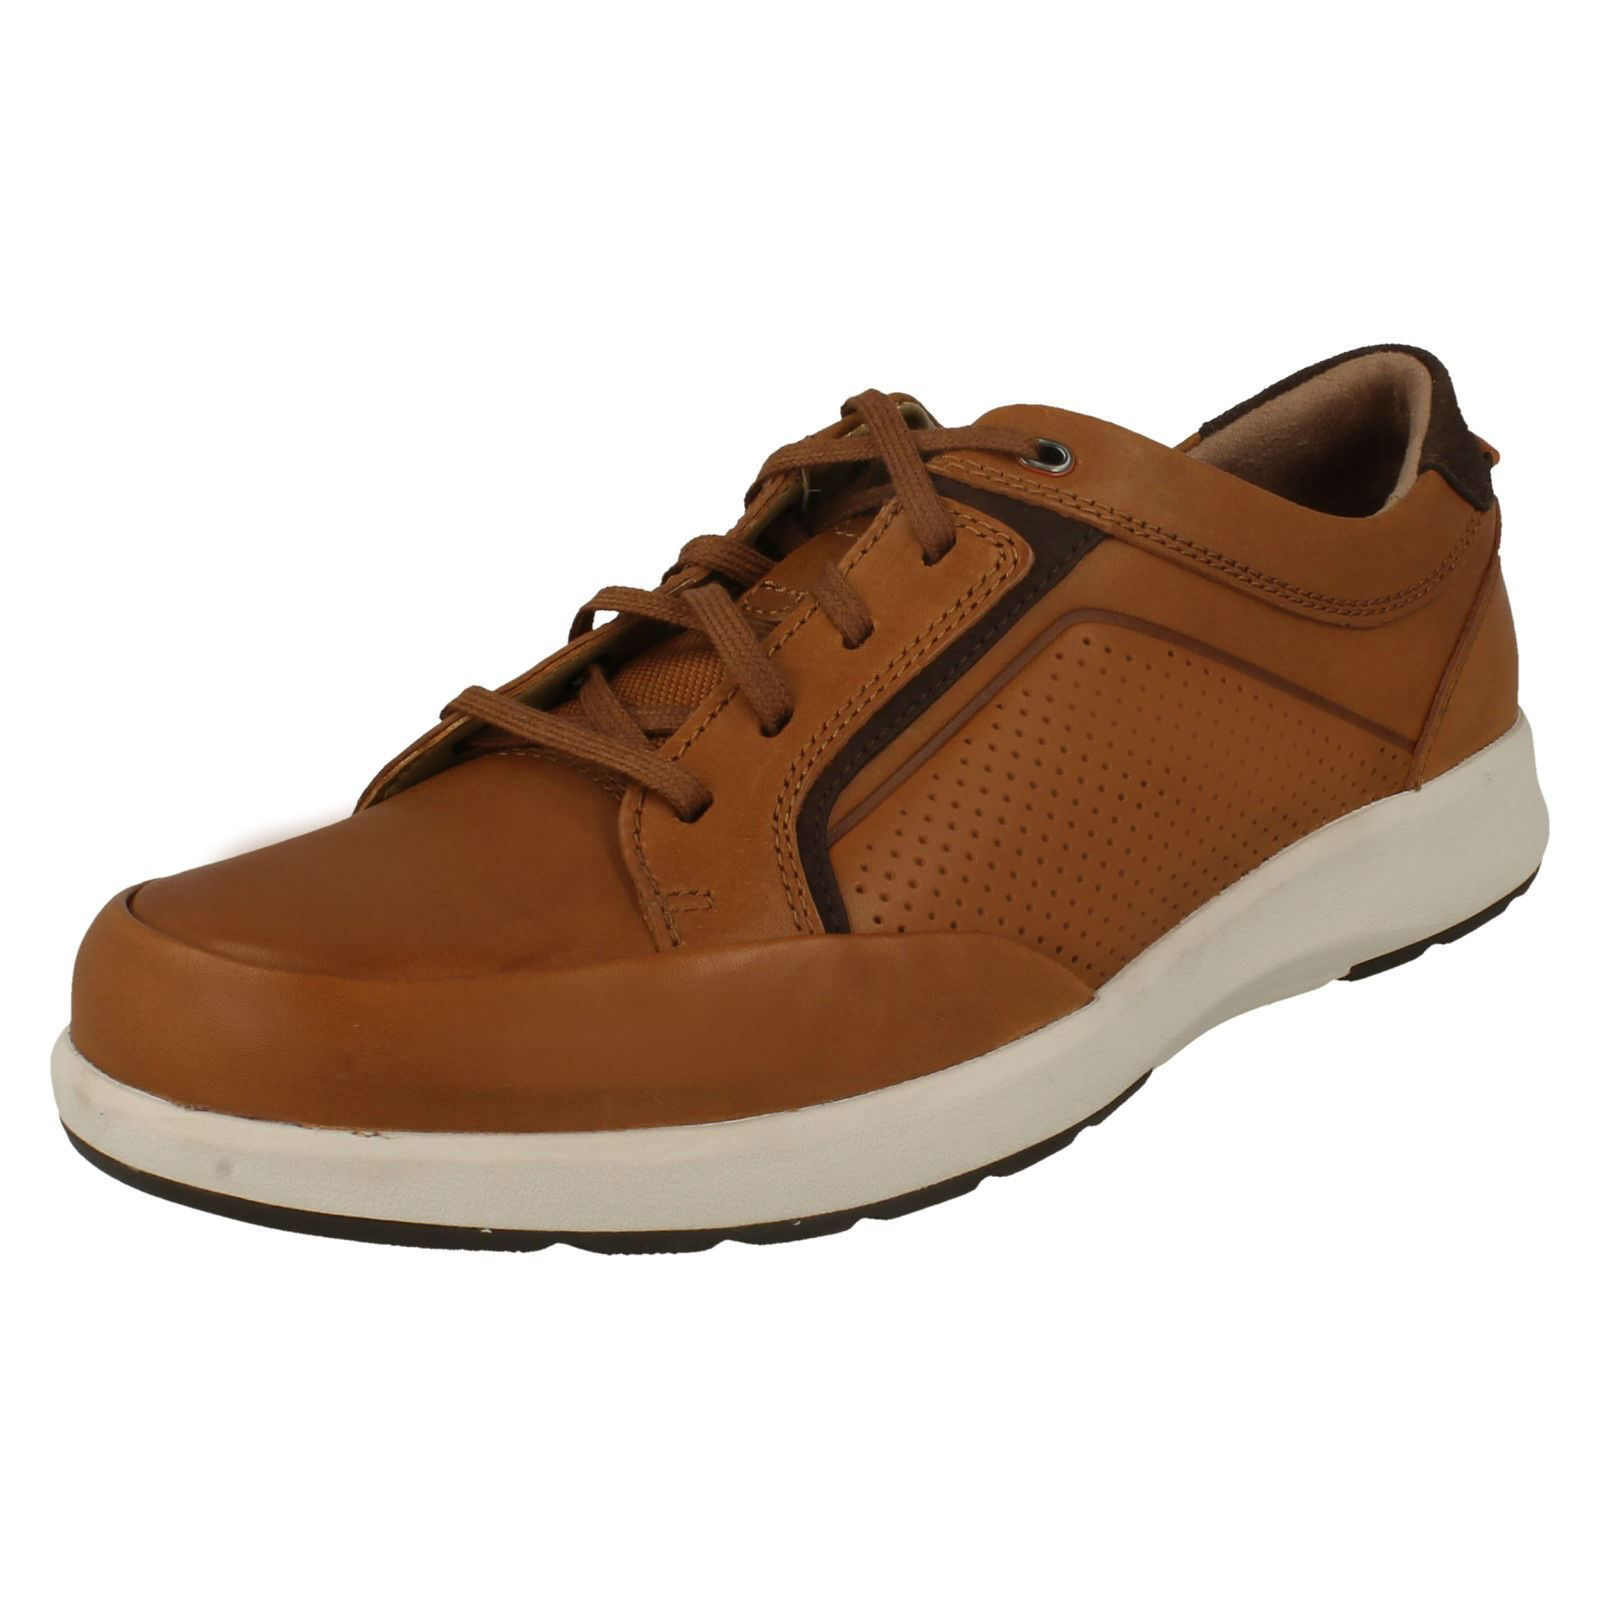 Mens Clarks-Casual Lace Up shoes Un Trail Form